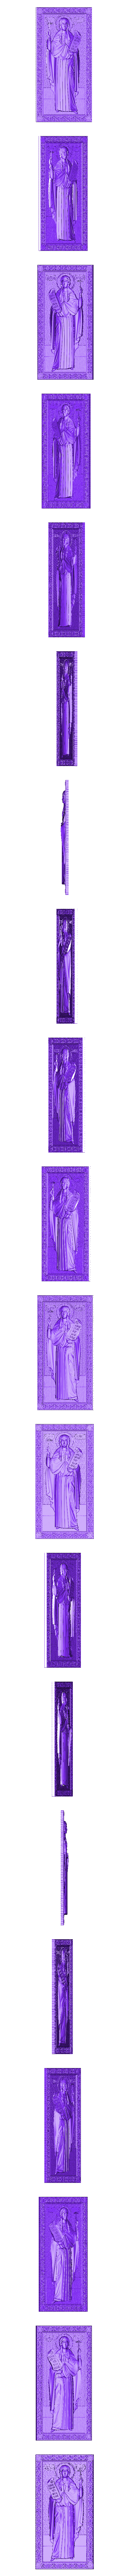 icon19.stl Download free STL file Religious frame cnc art router • 3D printer design, 3Dprintablefile